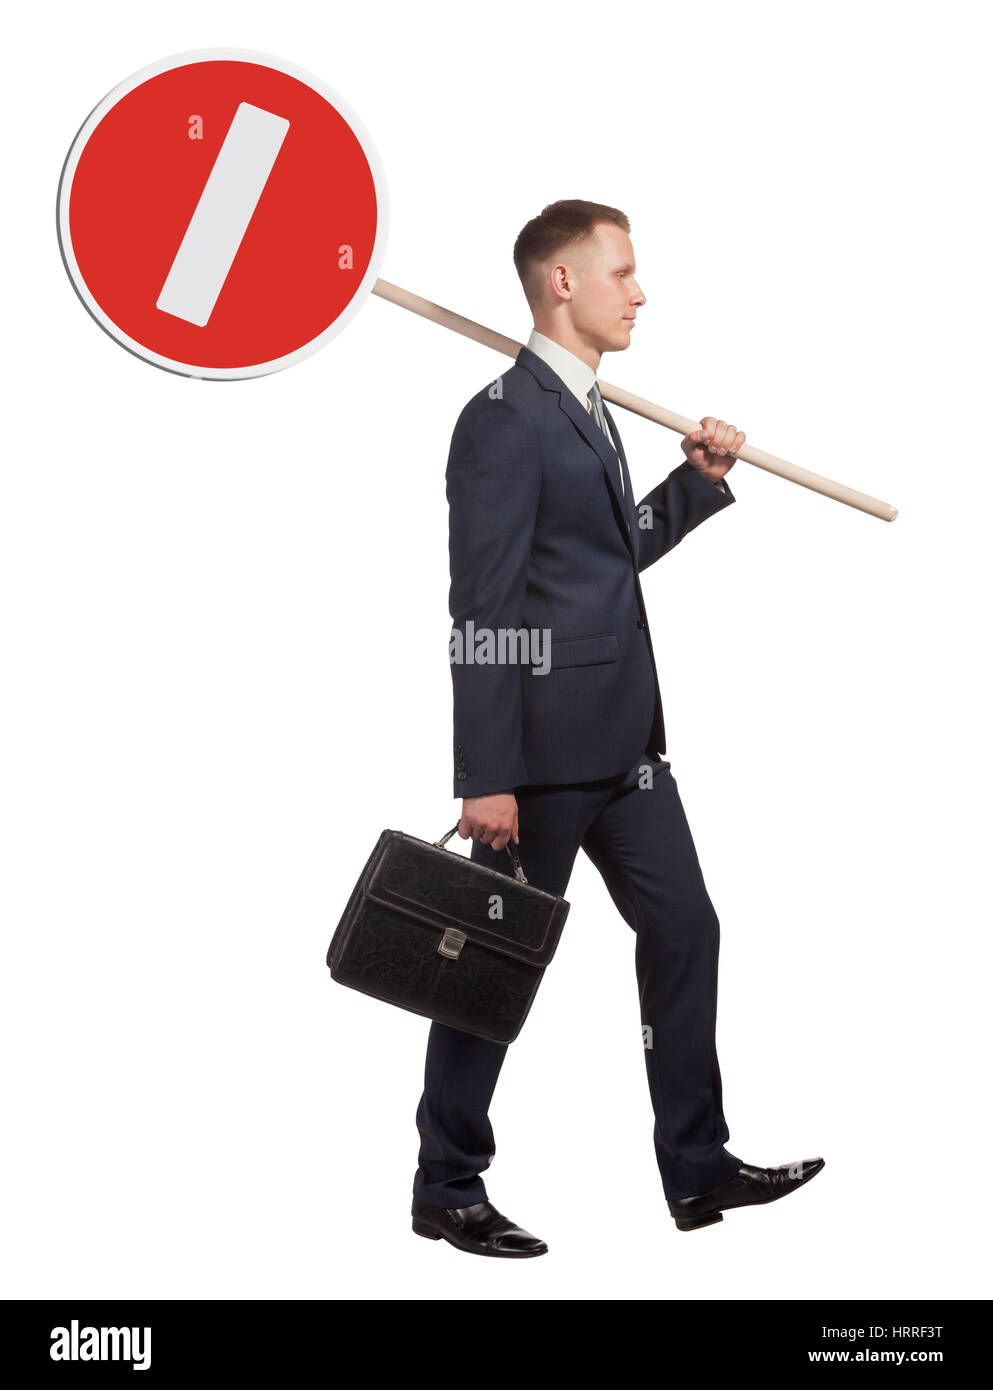 Official man carries a road sign, which means that no entry. Isolated on white background. - Stock Image